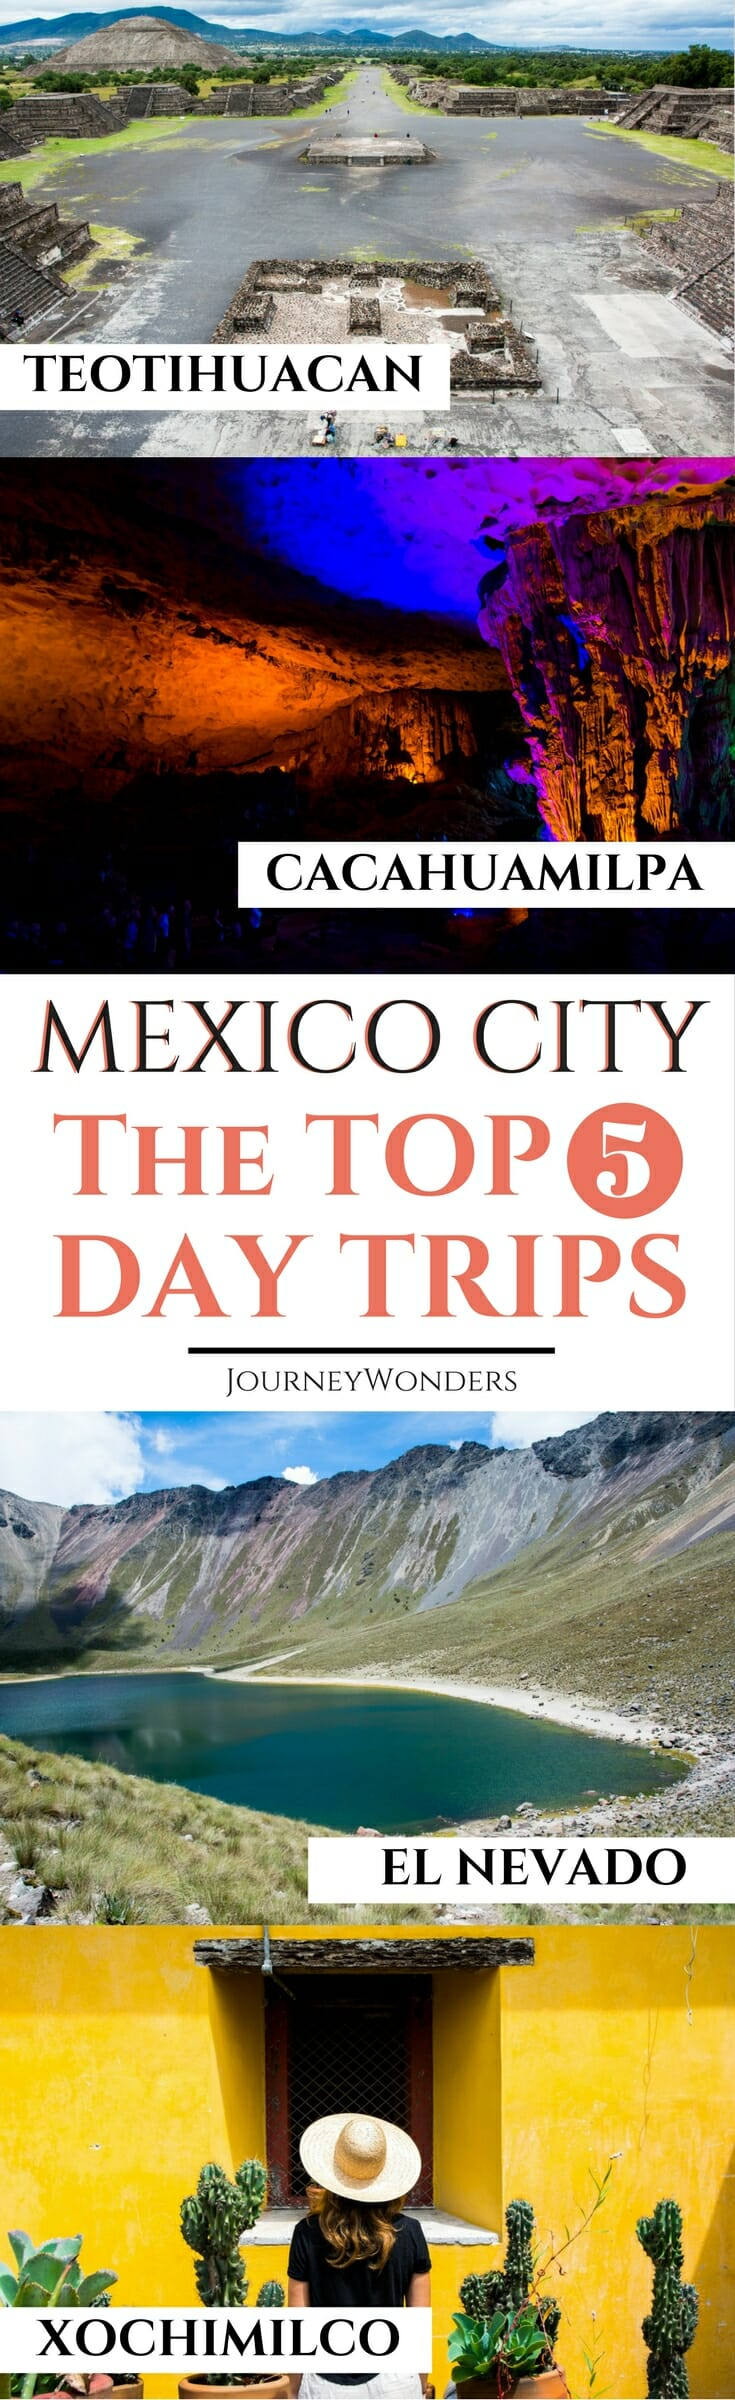 Visiting #MexicoCity? Check out the 5 Best Day Trips from #Mexico City including #Teotihuacan Pyramids , #Xochimilco , #Toluca and more!